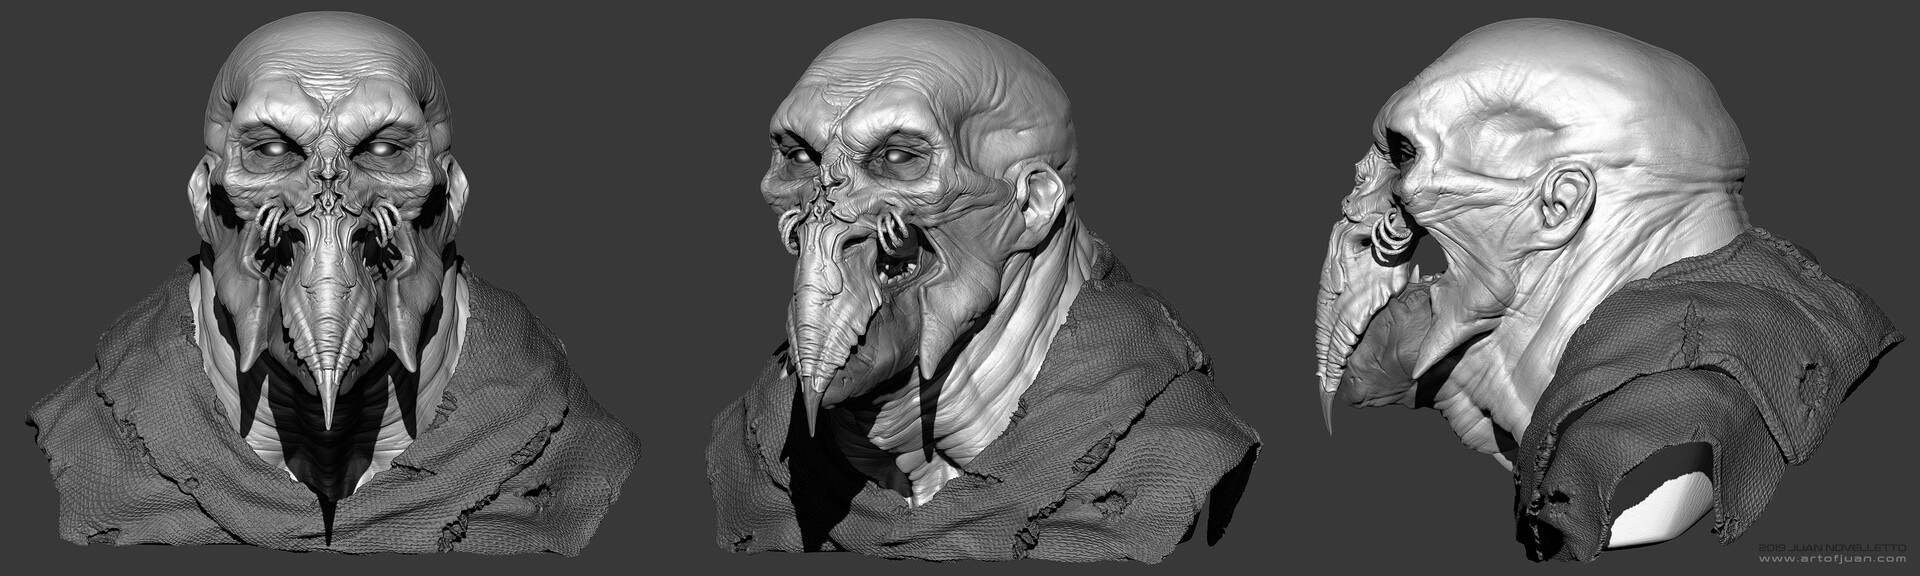 Juan novelletto hex 01 zbrush